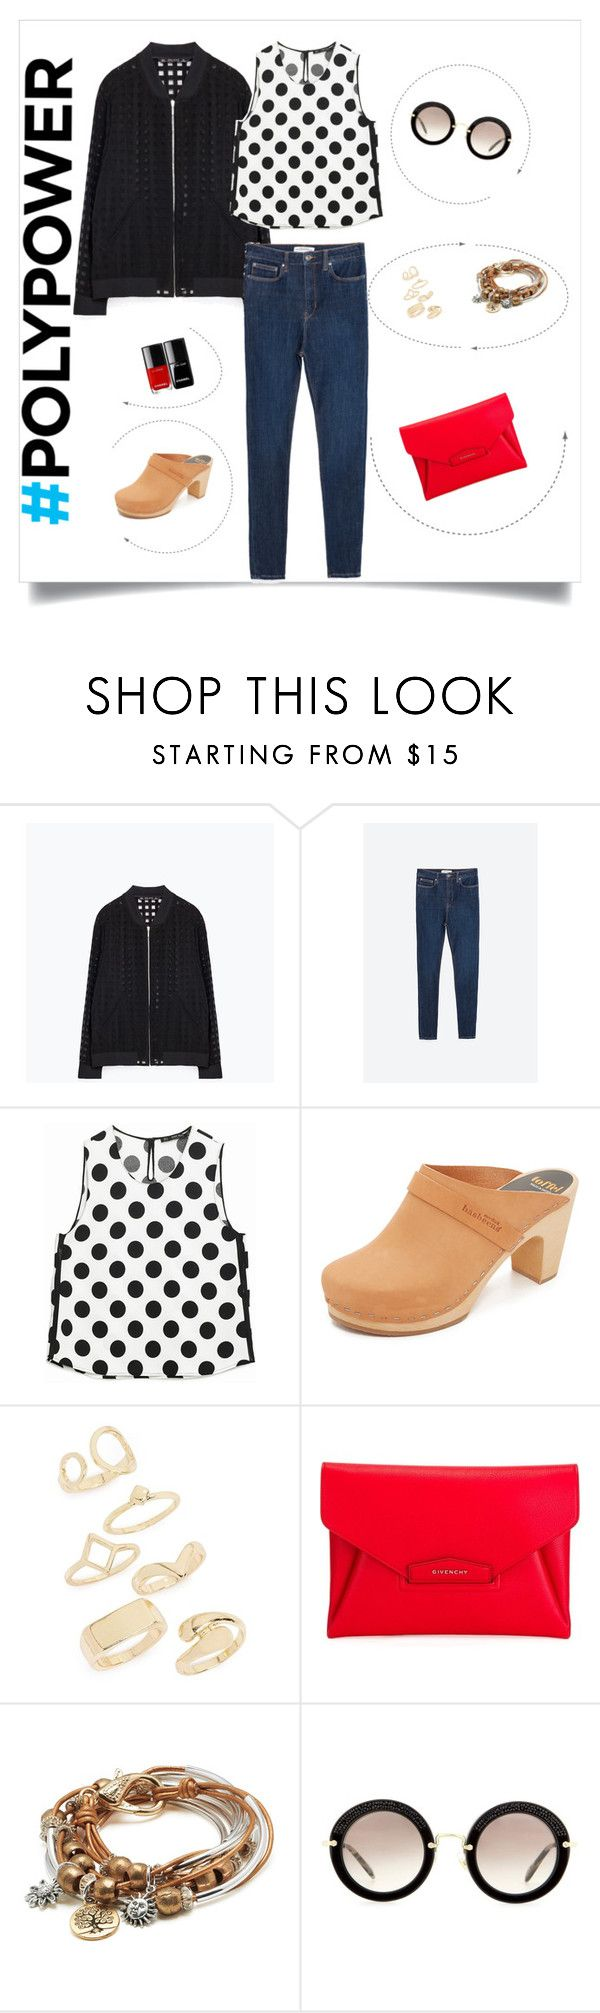 """My Power Outfit"" by fashion-mama-aquarius on Polyvore featuring Zara, Swedish Hasbeens, Topshop, Givenchy, Lizzy James, Miu Miu and PolyPower"